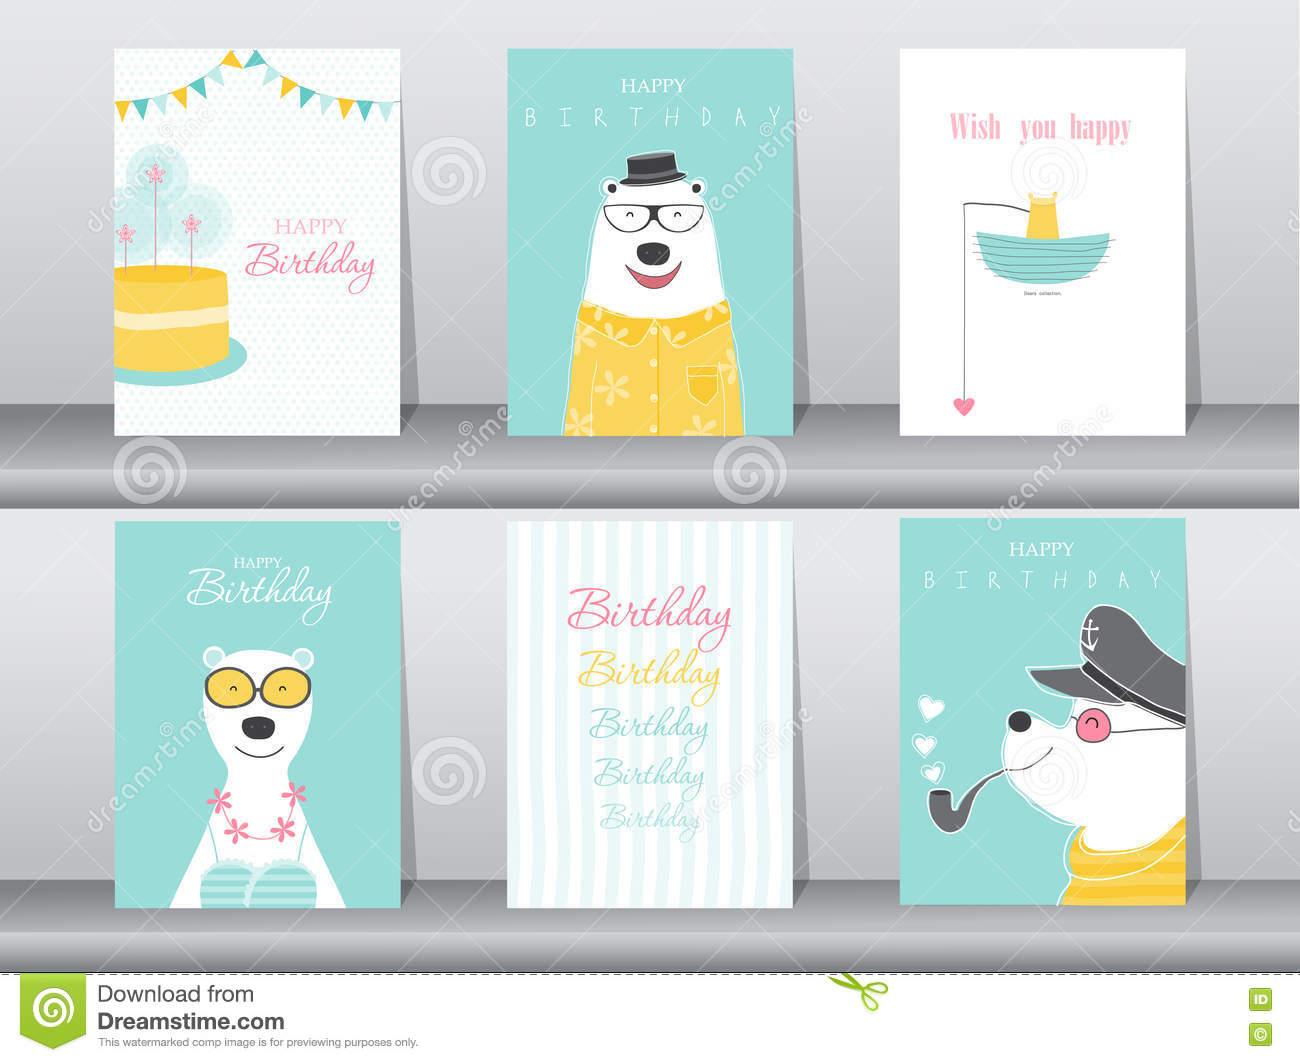 Set Of Birthday Cardsposterinvitation Cardstemplategreeting – Set of Birthday Cards